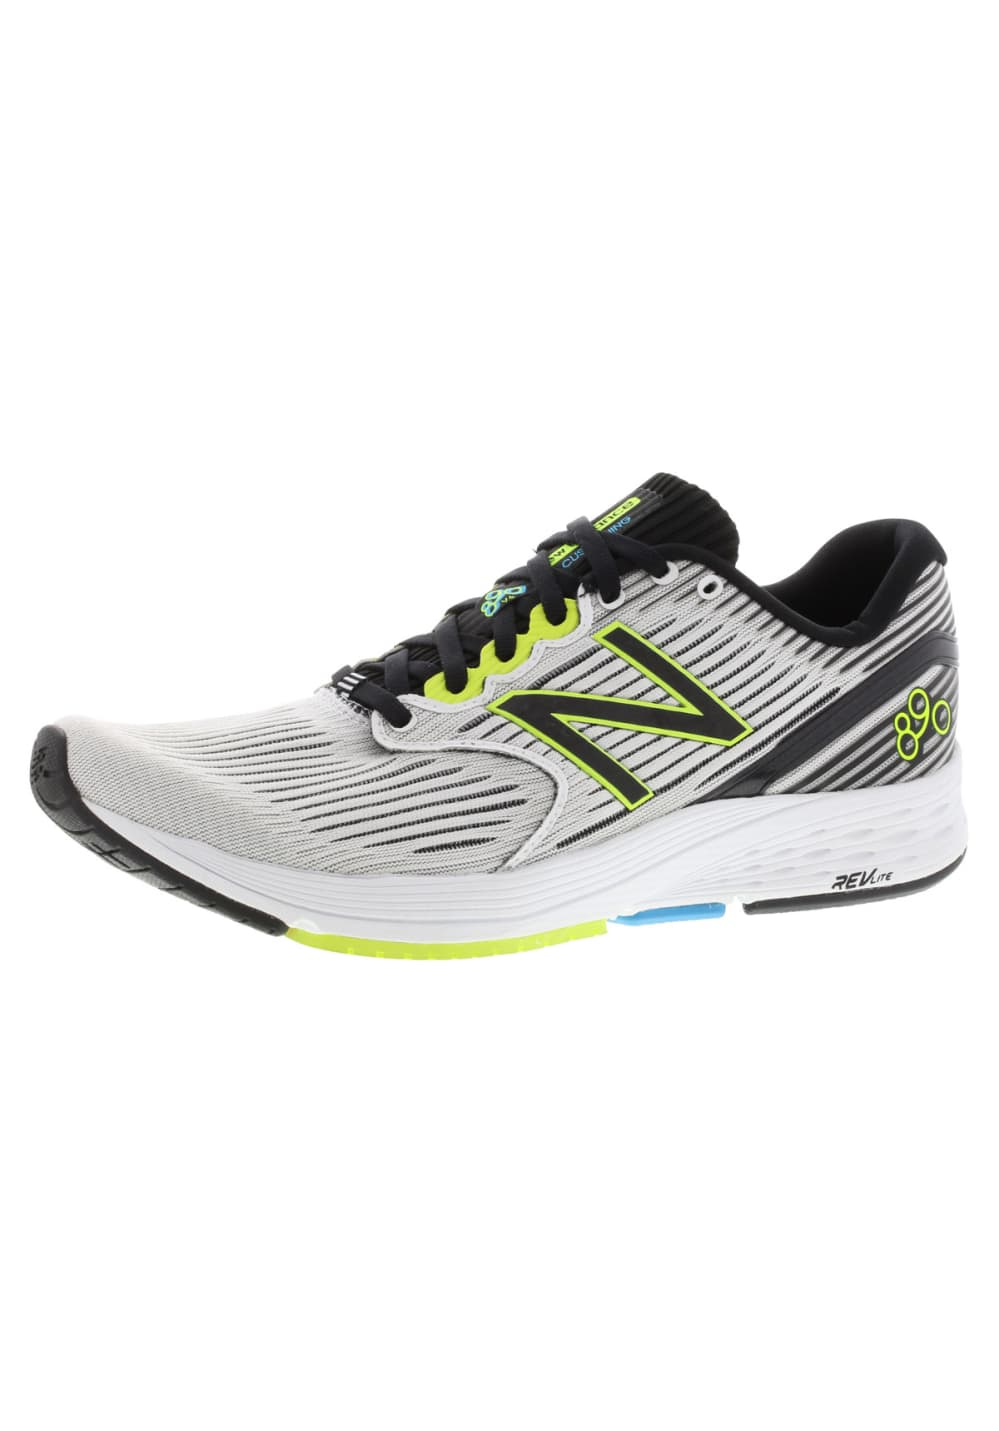 release date: f0ed2 9d9da New Balance Relaunch 890 V6 - Running shoes for Men - White   21RUN